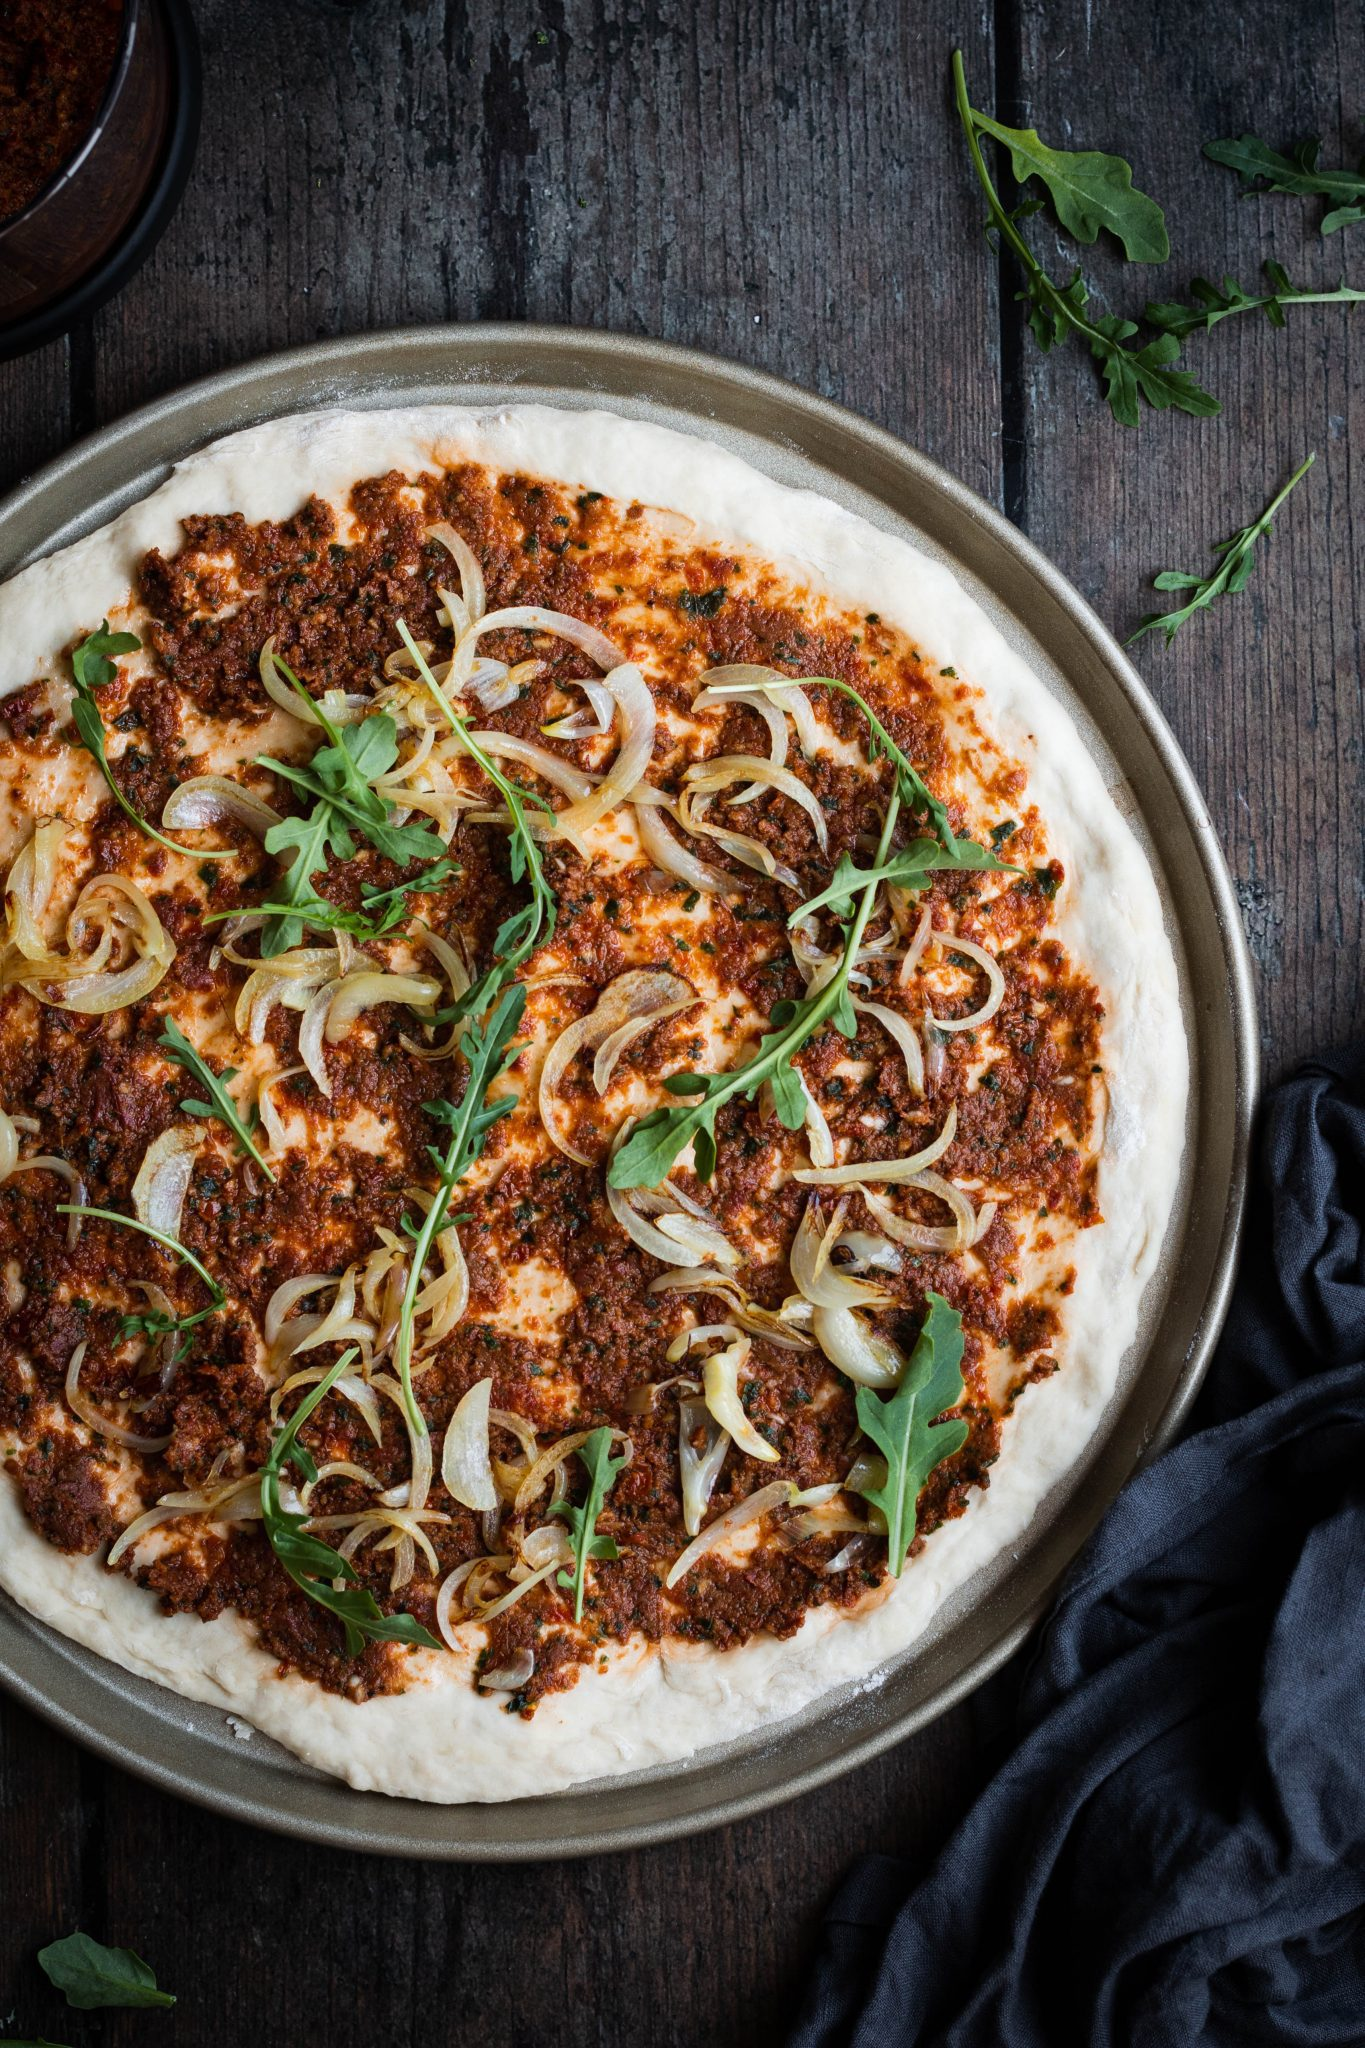 pizza dough with sun-dried tomato pesto and vegetables